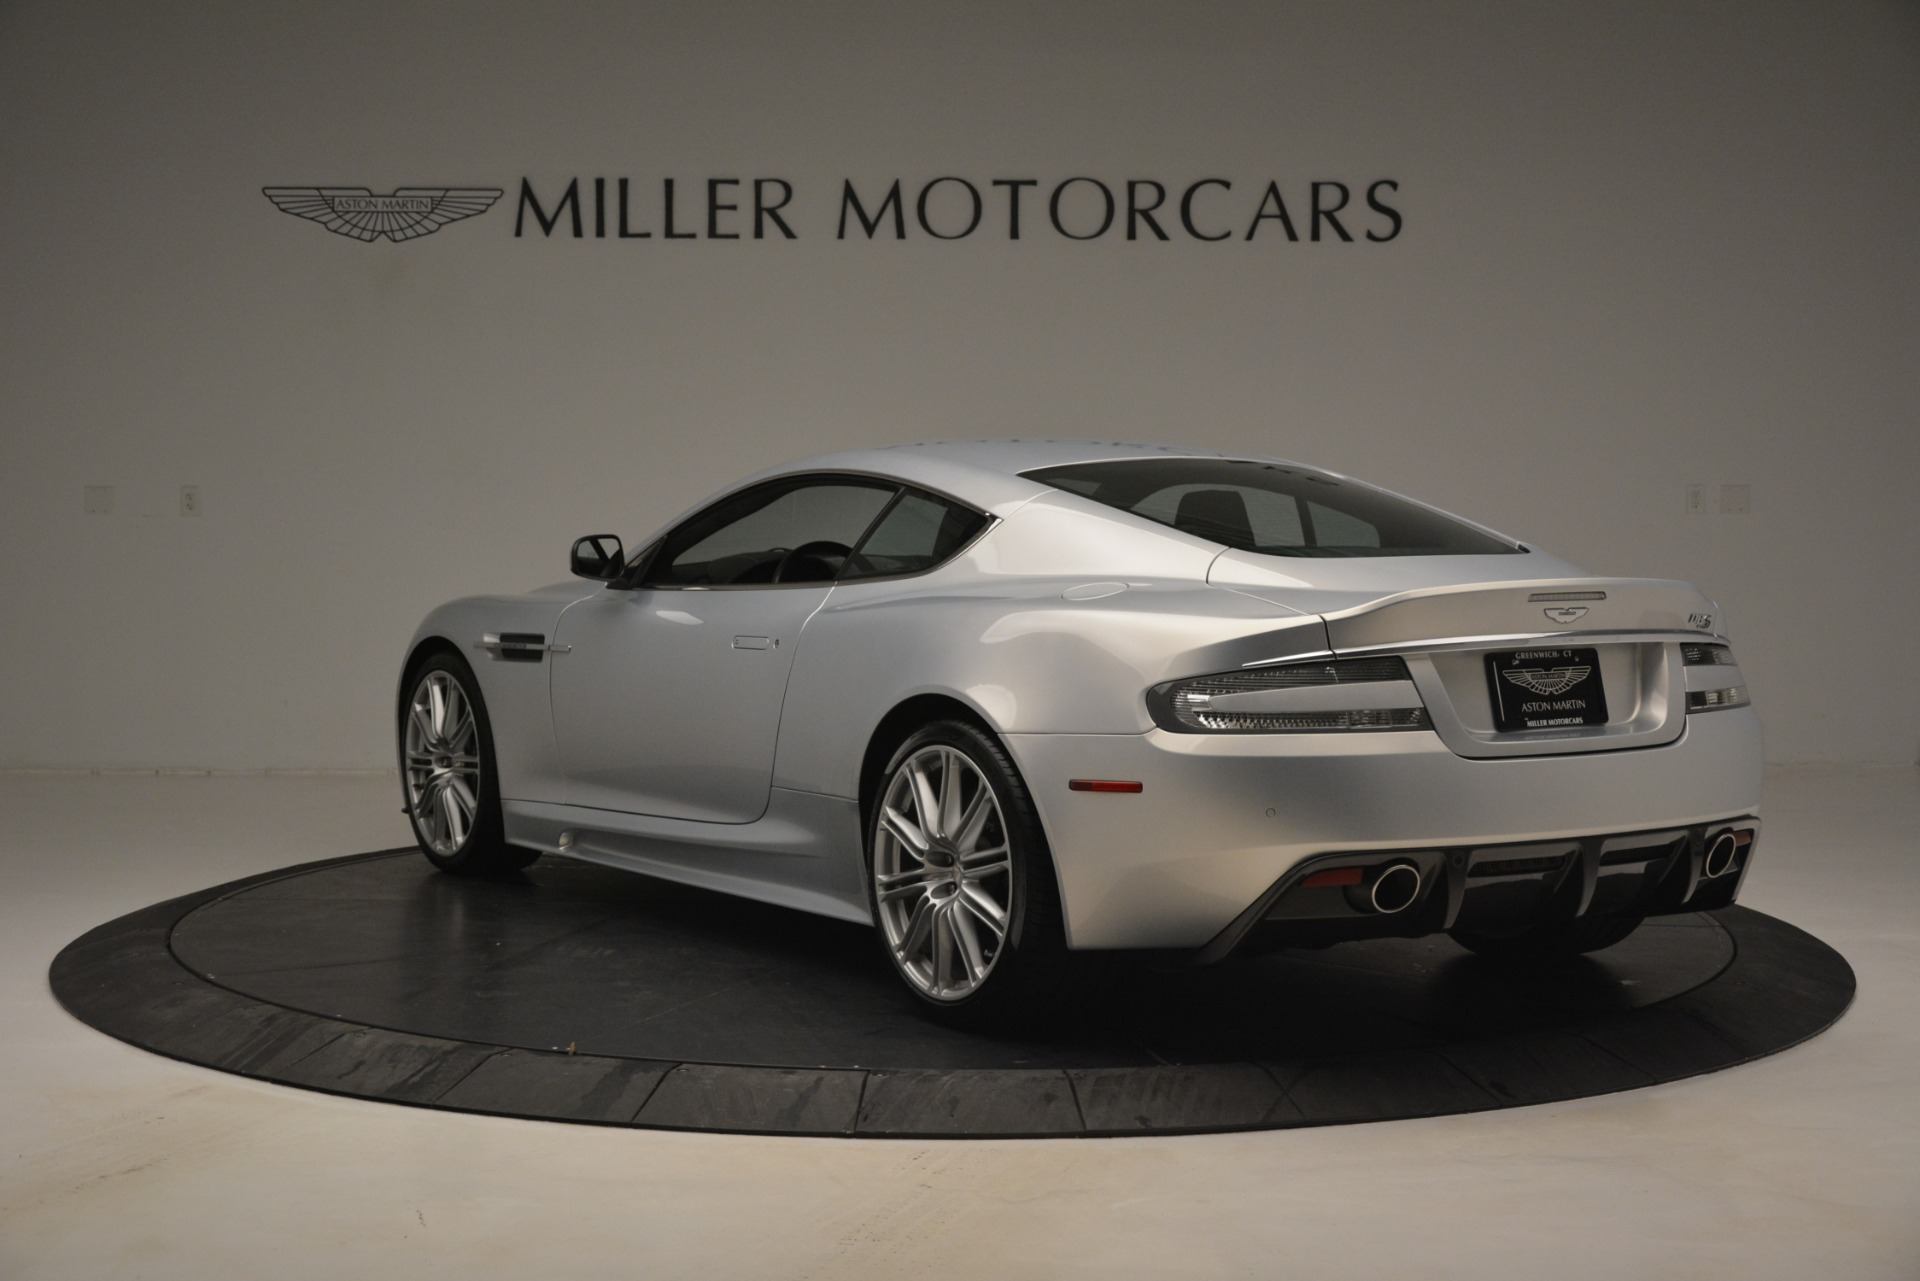 Used 2009 Aston Martin DBS Coupe For Sale In Westport, CT 3033_p5